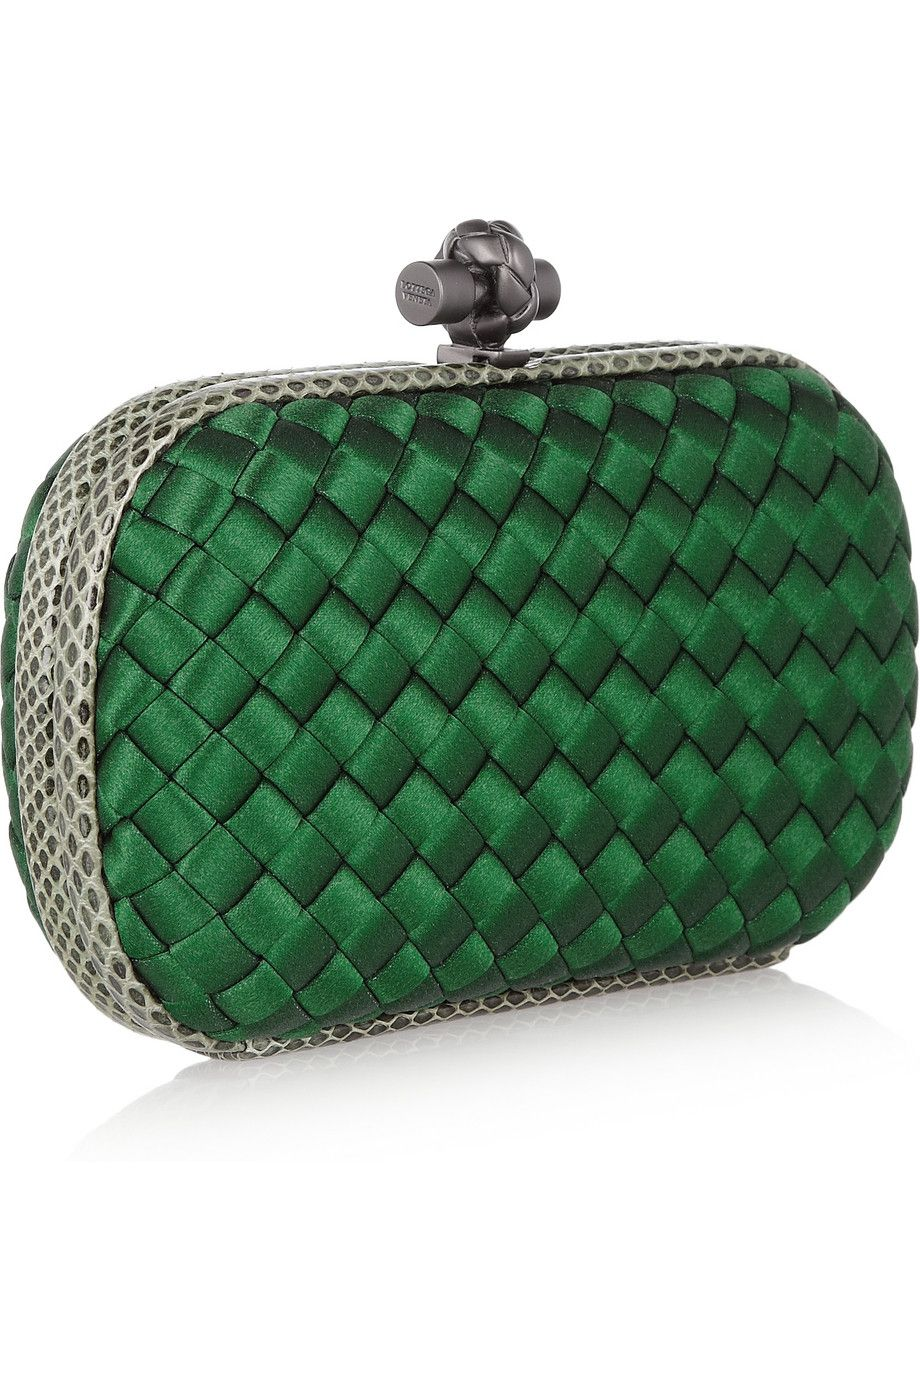 Bottega Veneta - The Knot watersnake-trimmed Intrecciato satin clutch in  emerald green.  1 620aba0efb0c1